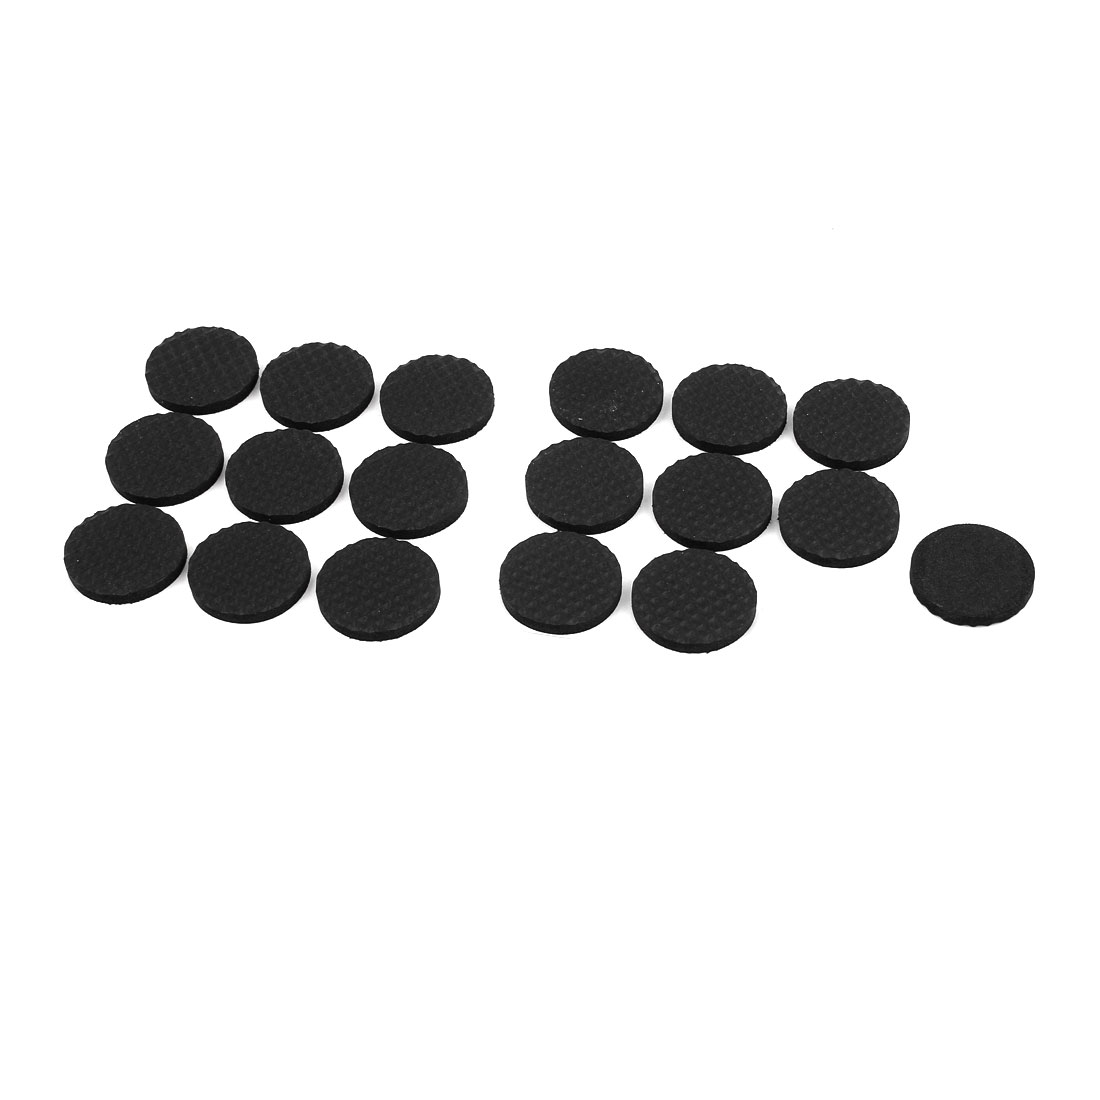 18pcs Black Round Shaped Adhesive Base Furniture Foot Cover Protection Mat Cushion Pad